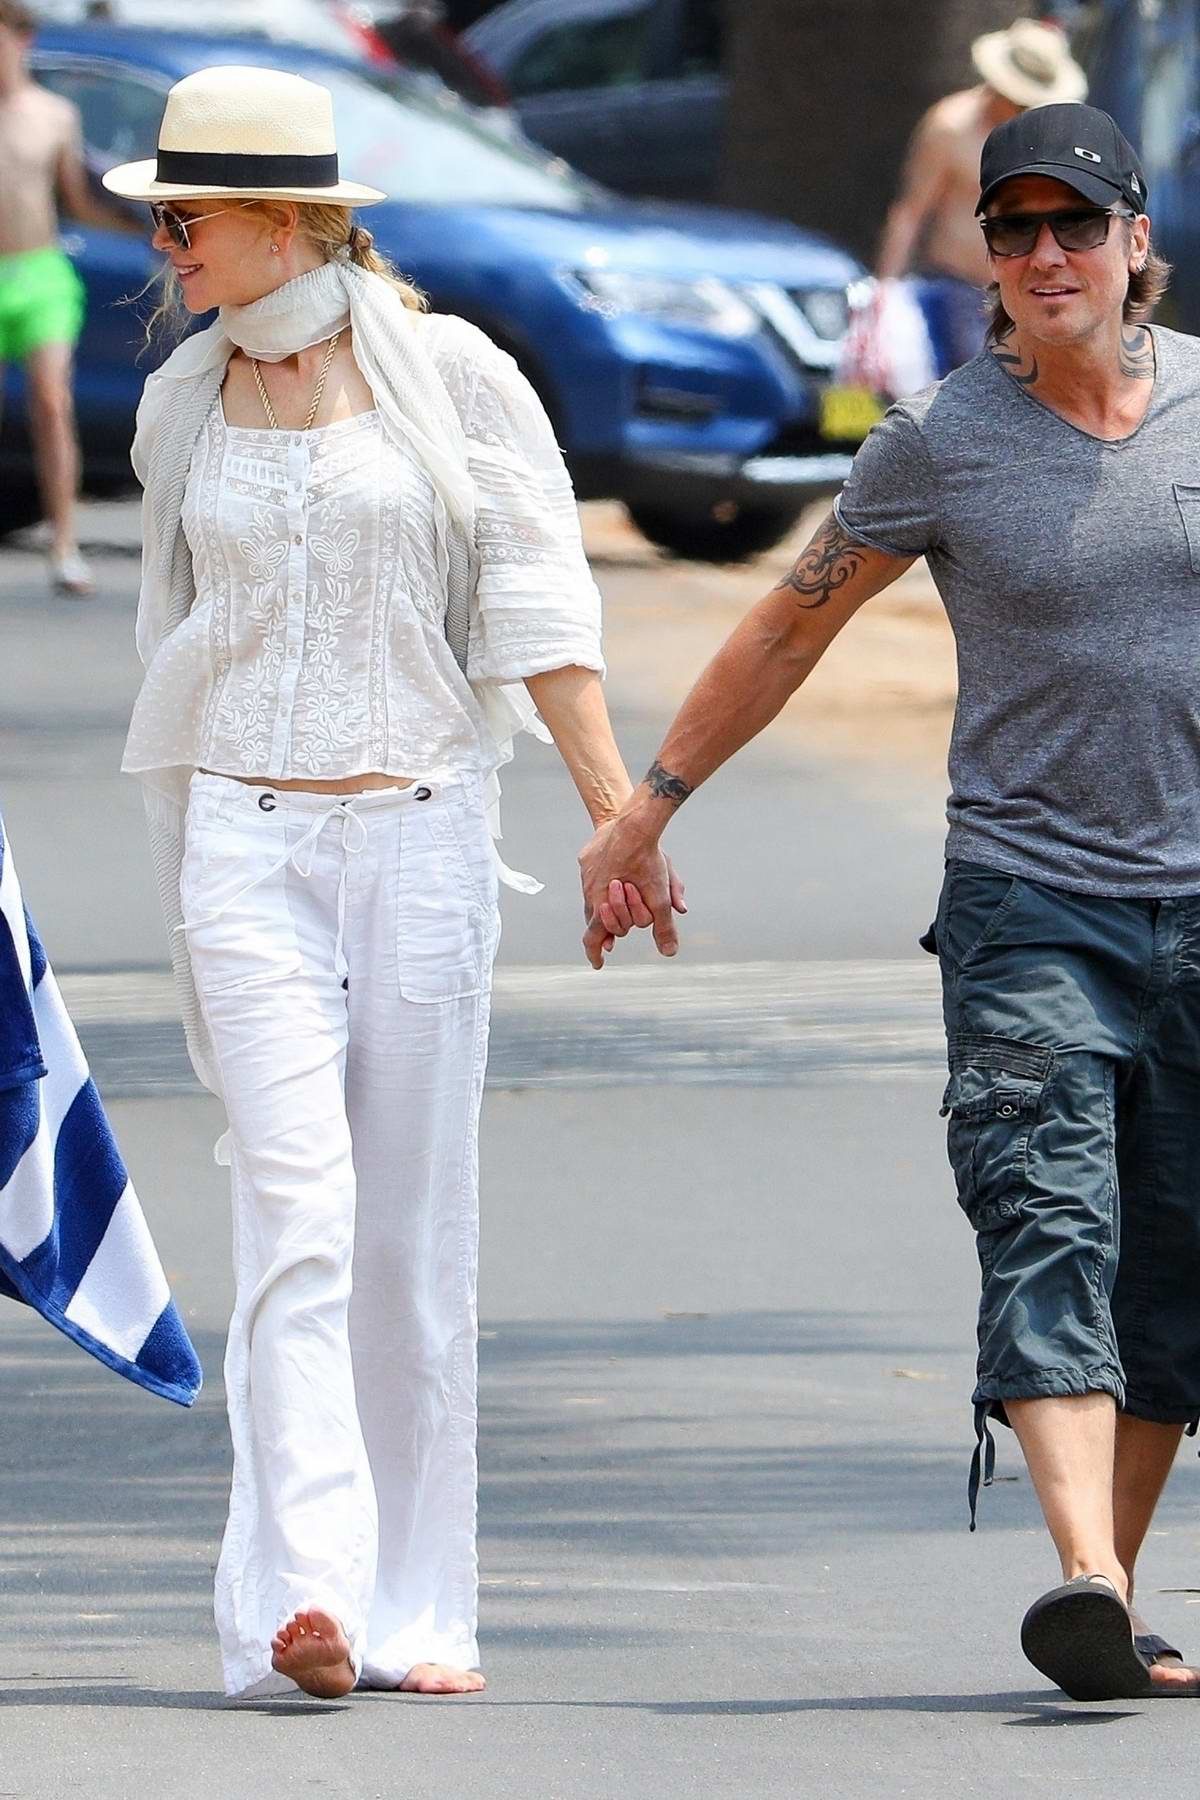 Nicole Kidman beams in all-white while starting her morning with coffee run alongside Keith Urban in Sydney, Australia